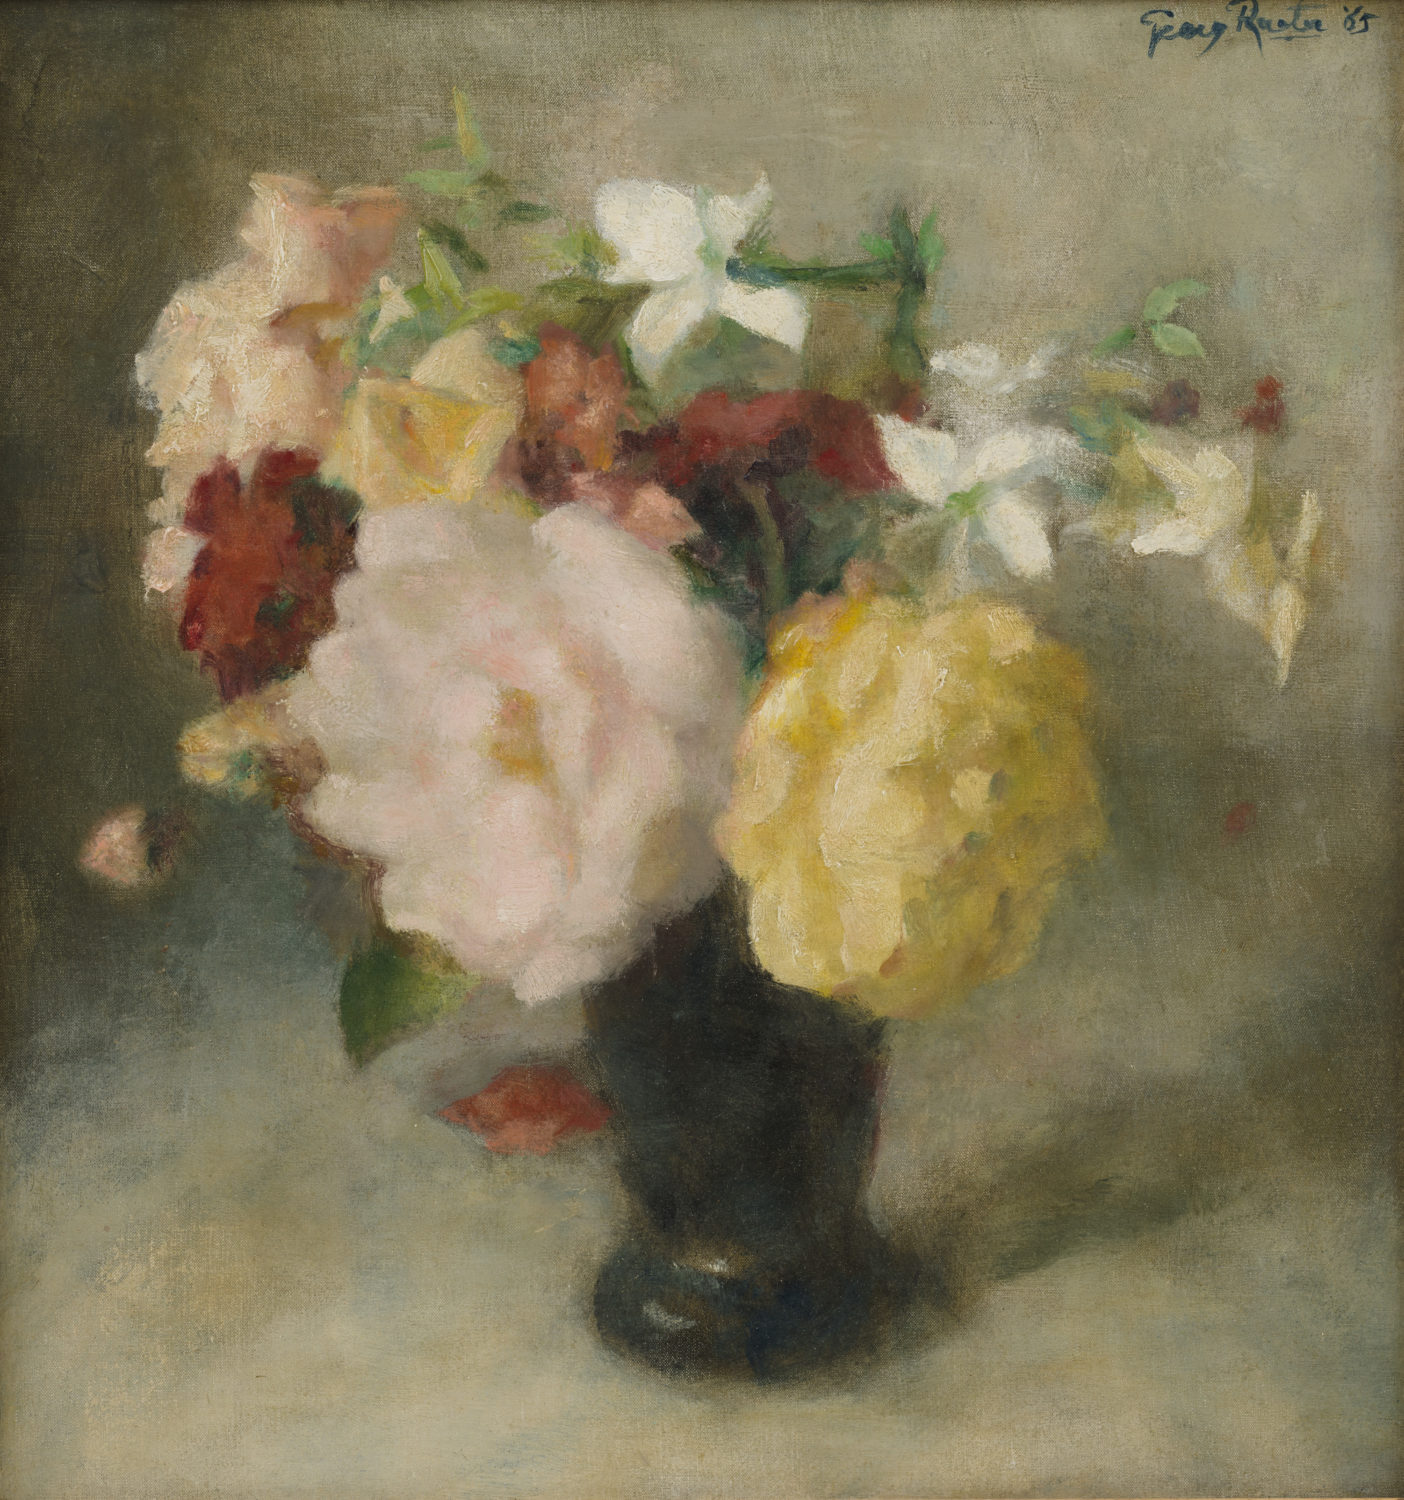 Georg Rueter | A still life with flowers | Kunsthandel Bies | Bies Gallery